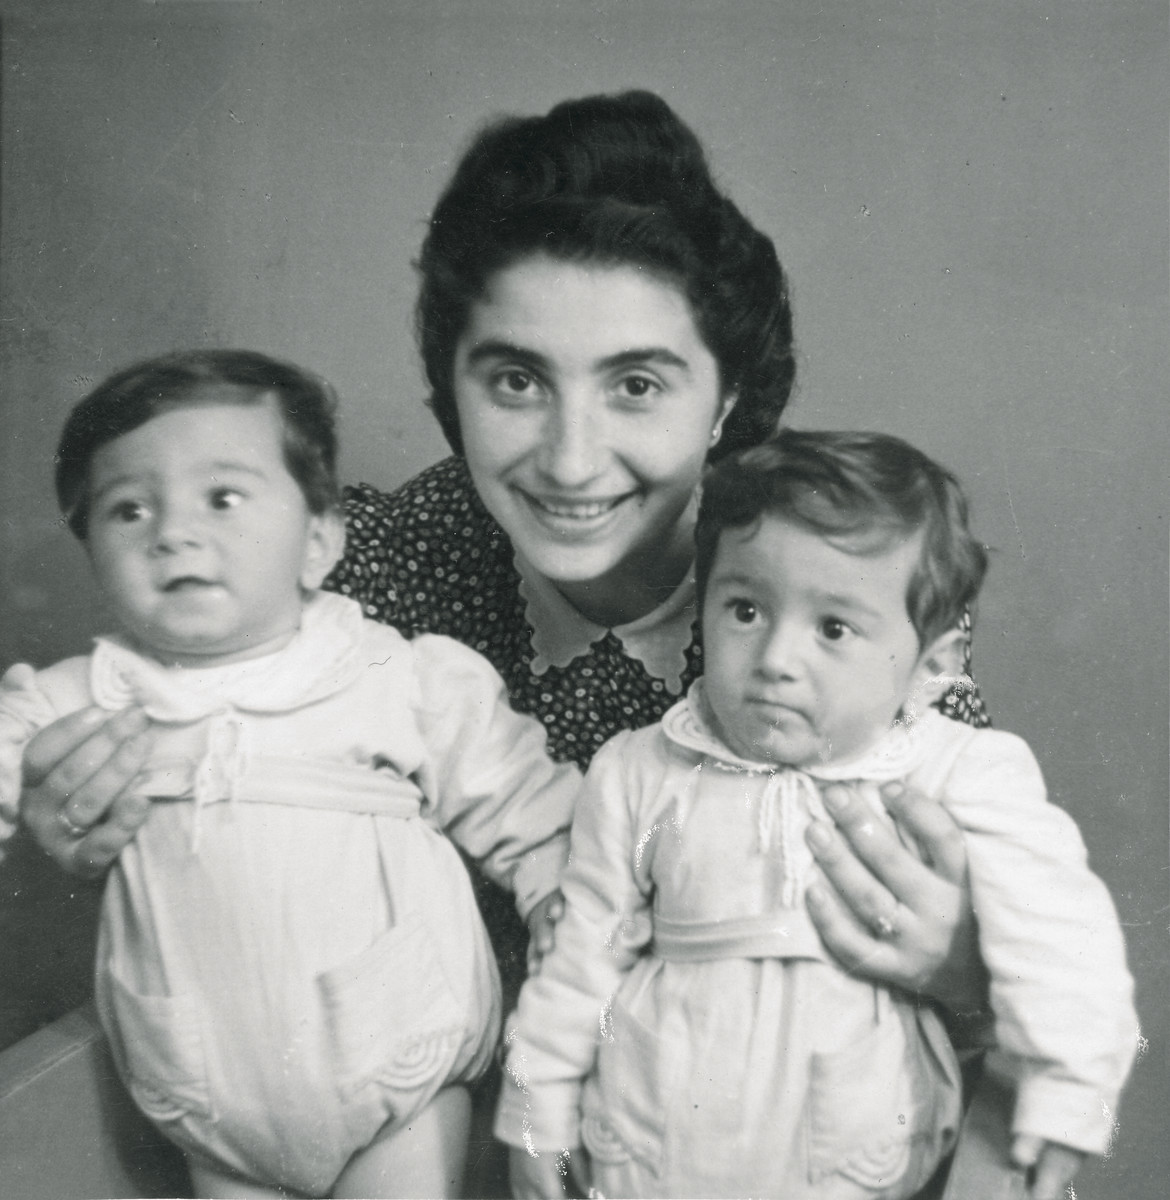 Ella (Kabilio) Finci holds her twin sons, Shmuel and Avraham.